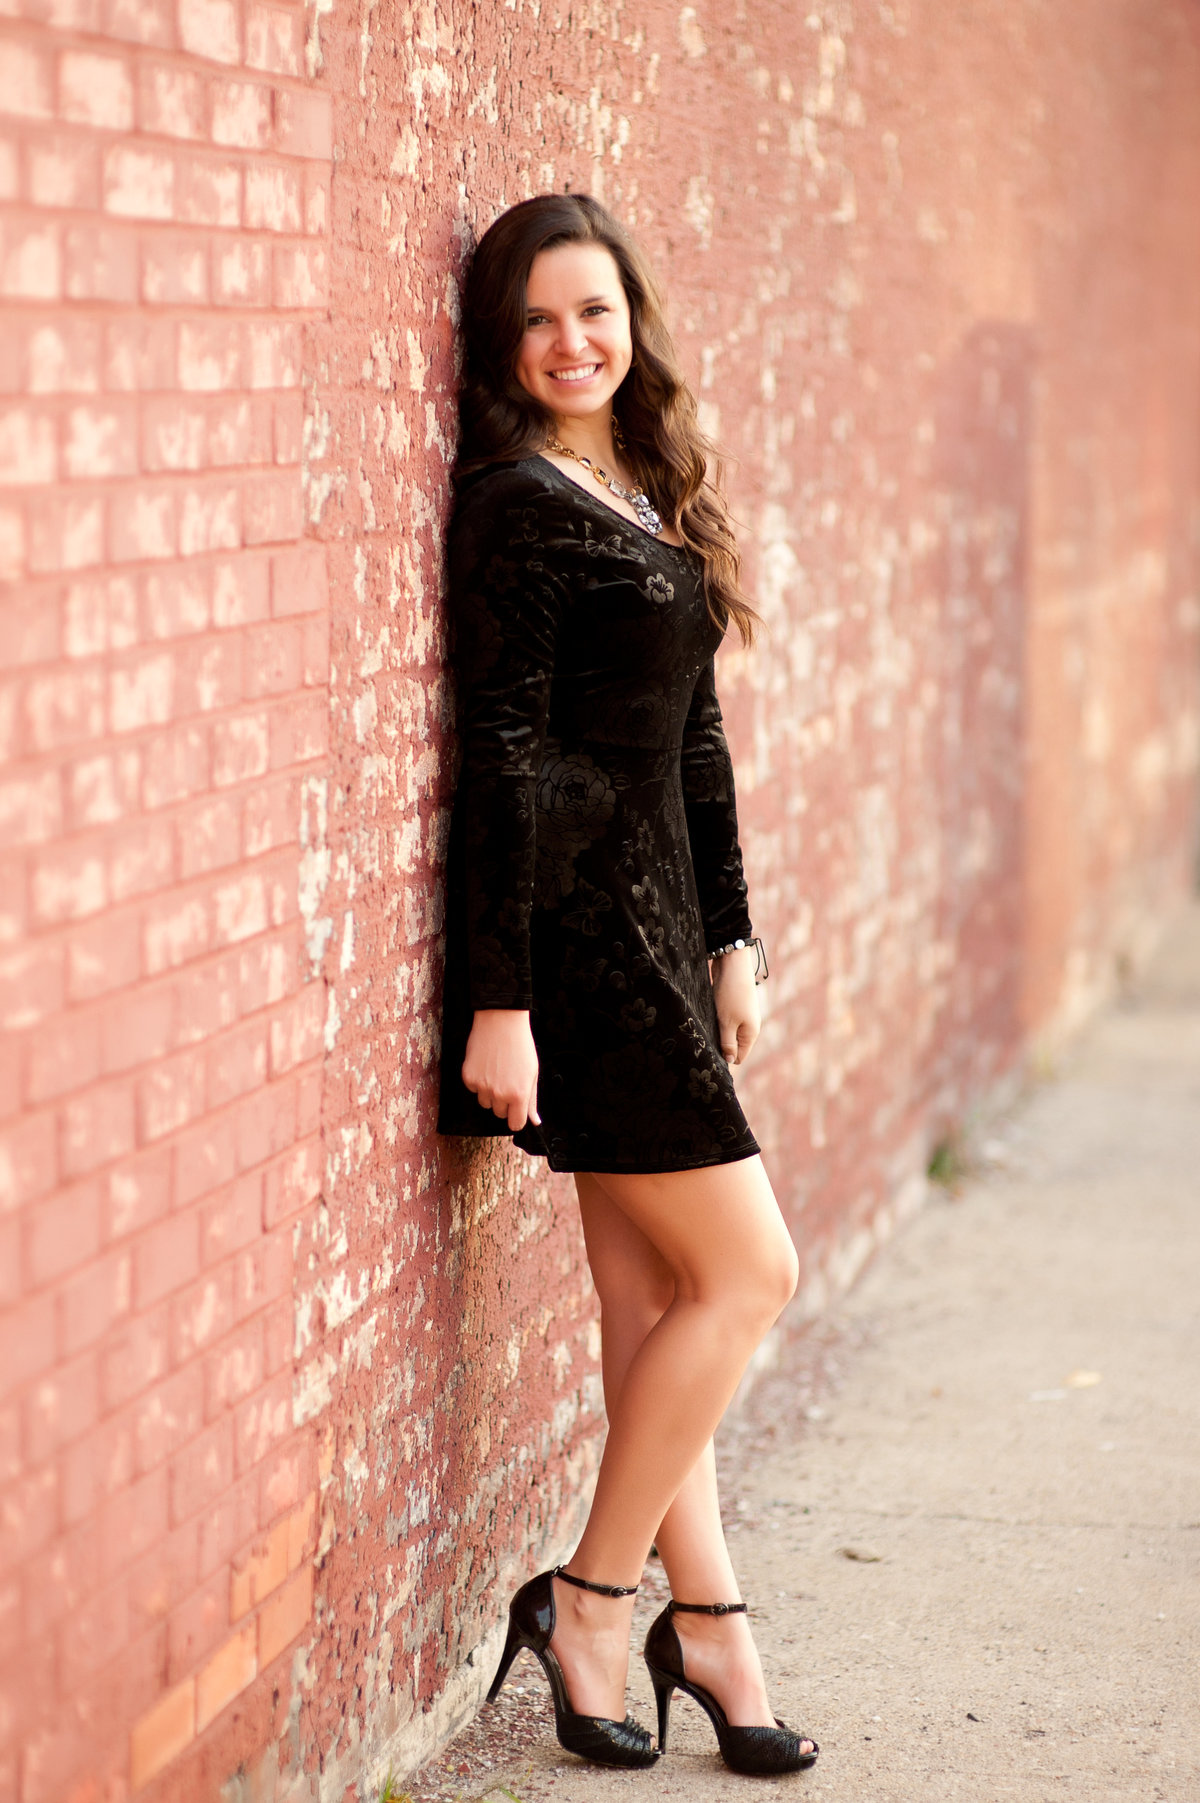 BROWNSBURG SENIOR PHOTOGRAPHER